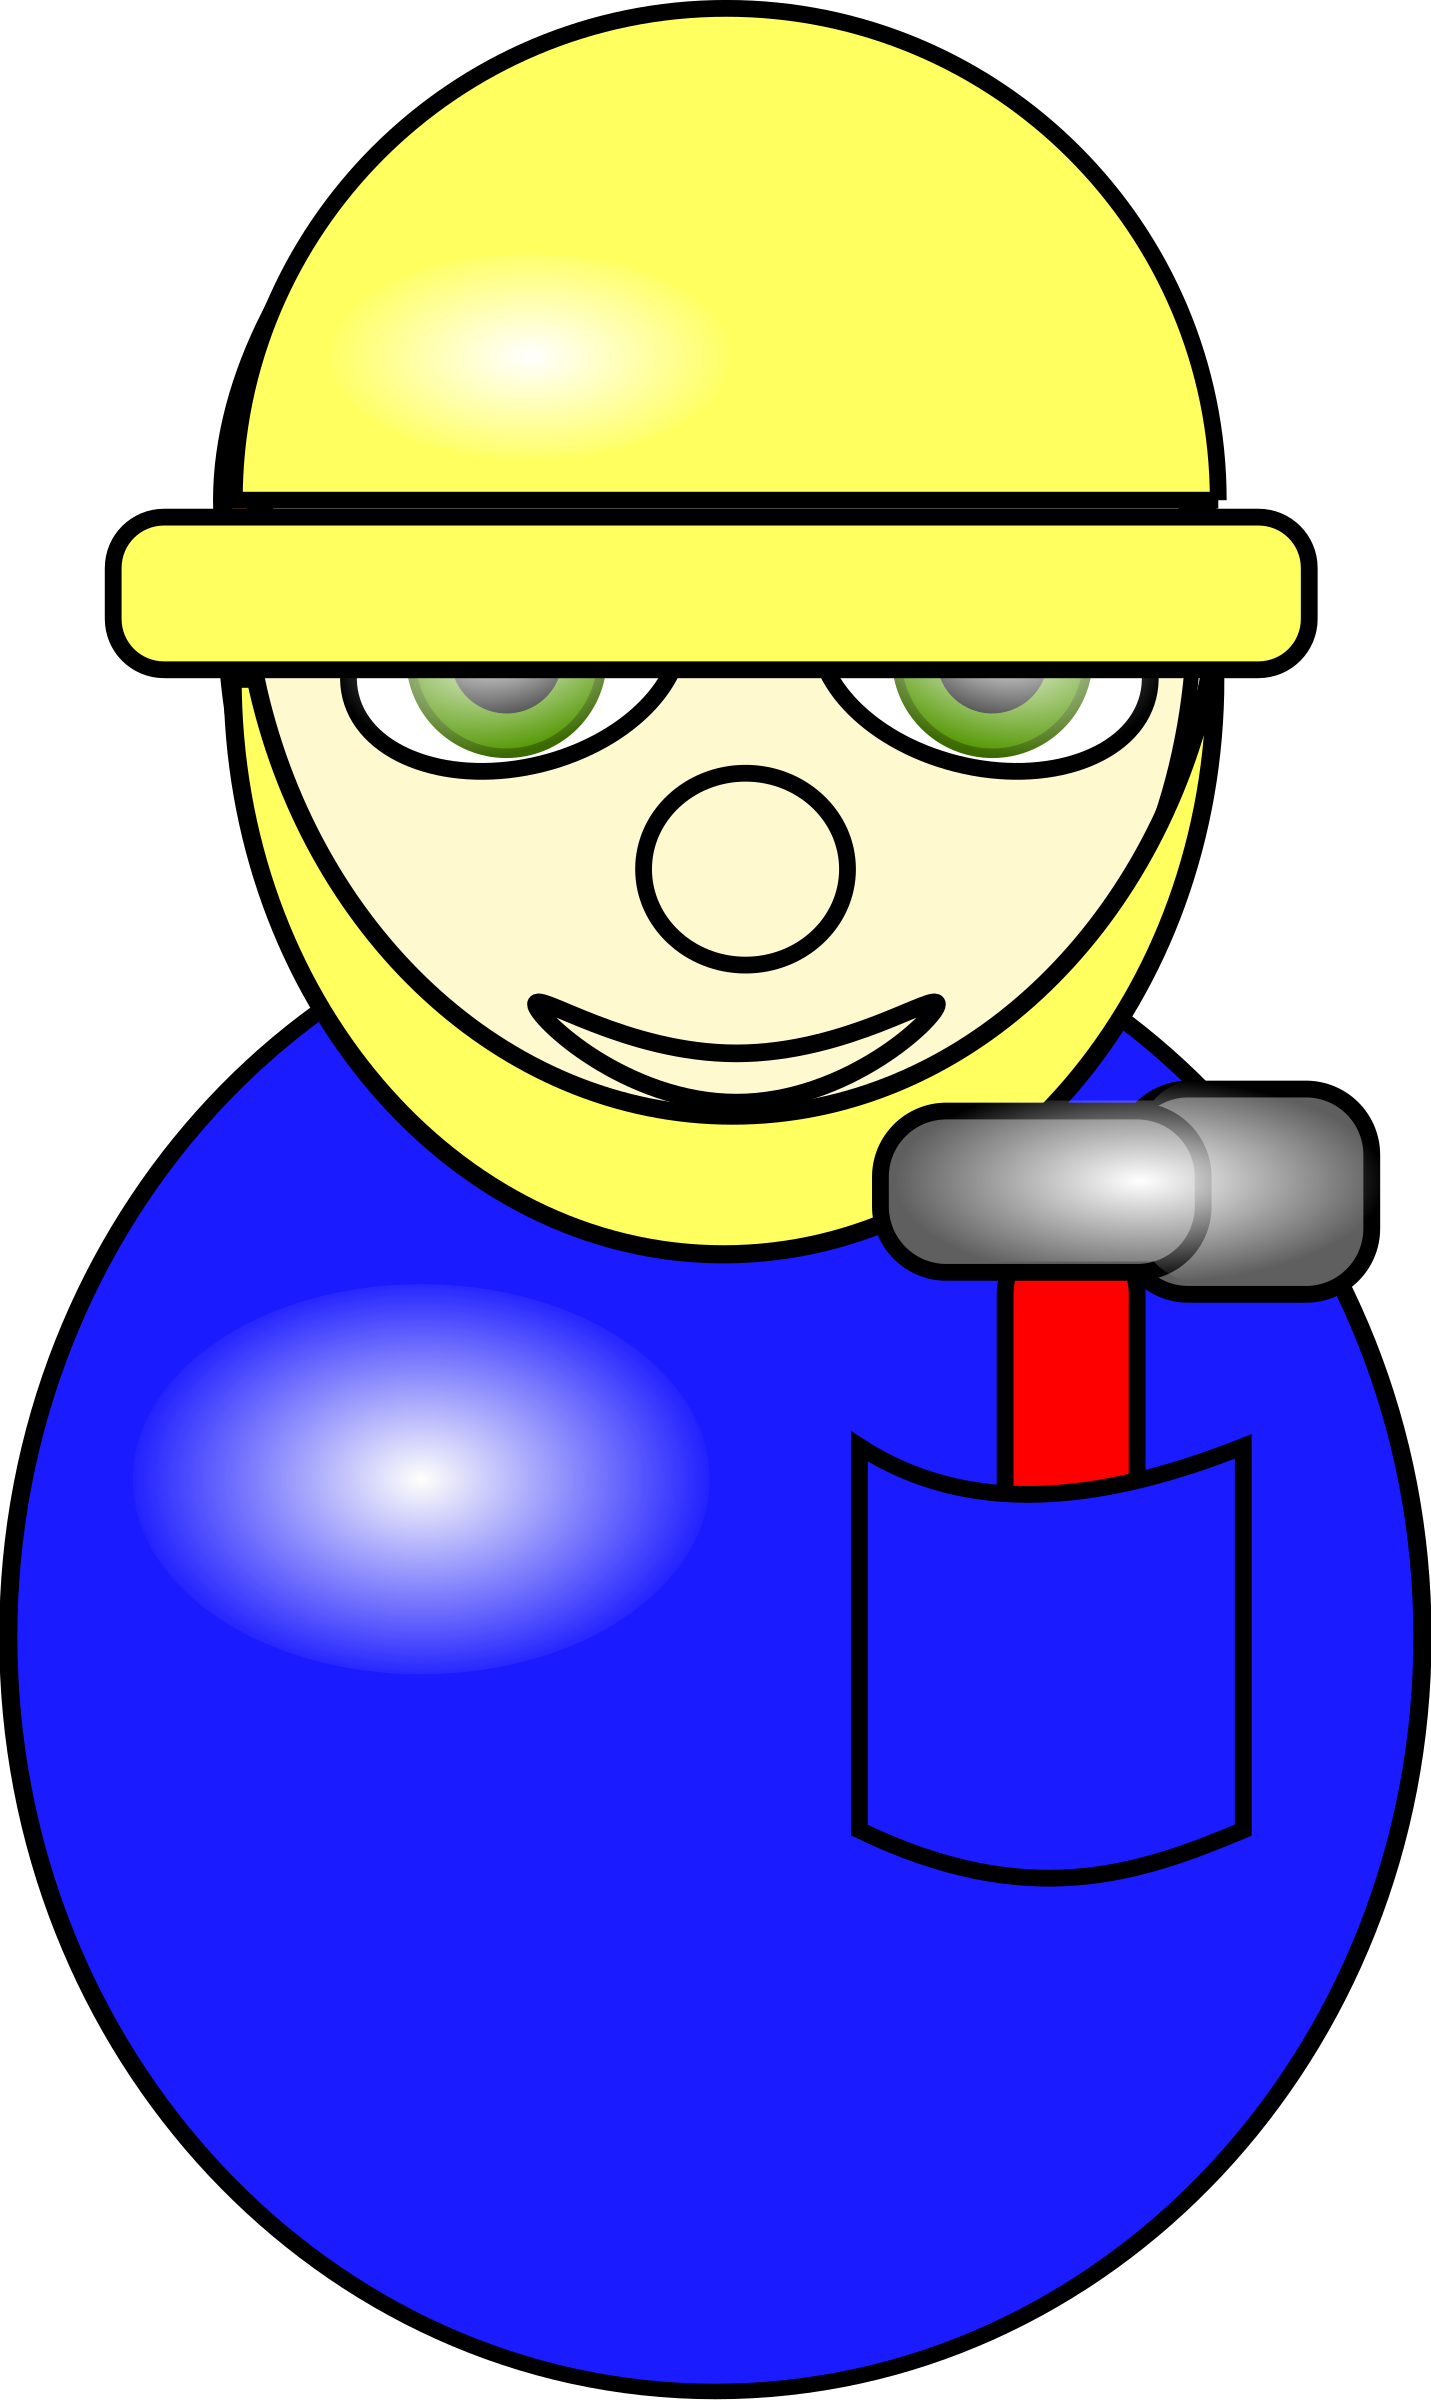 Electrician clipart hard hat worker. Construction cartoon in blue